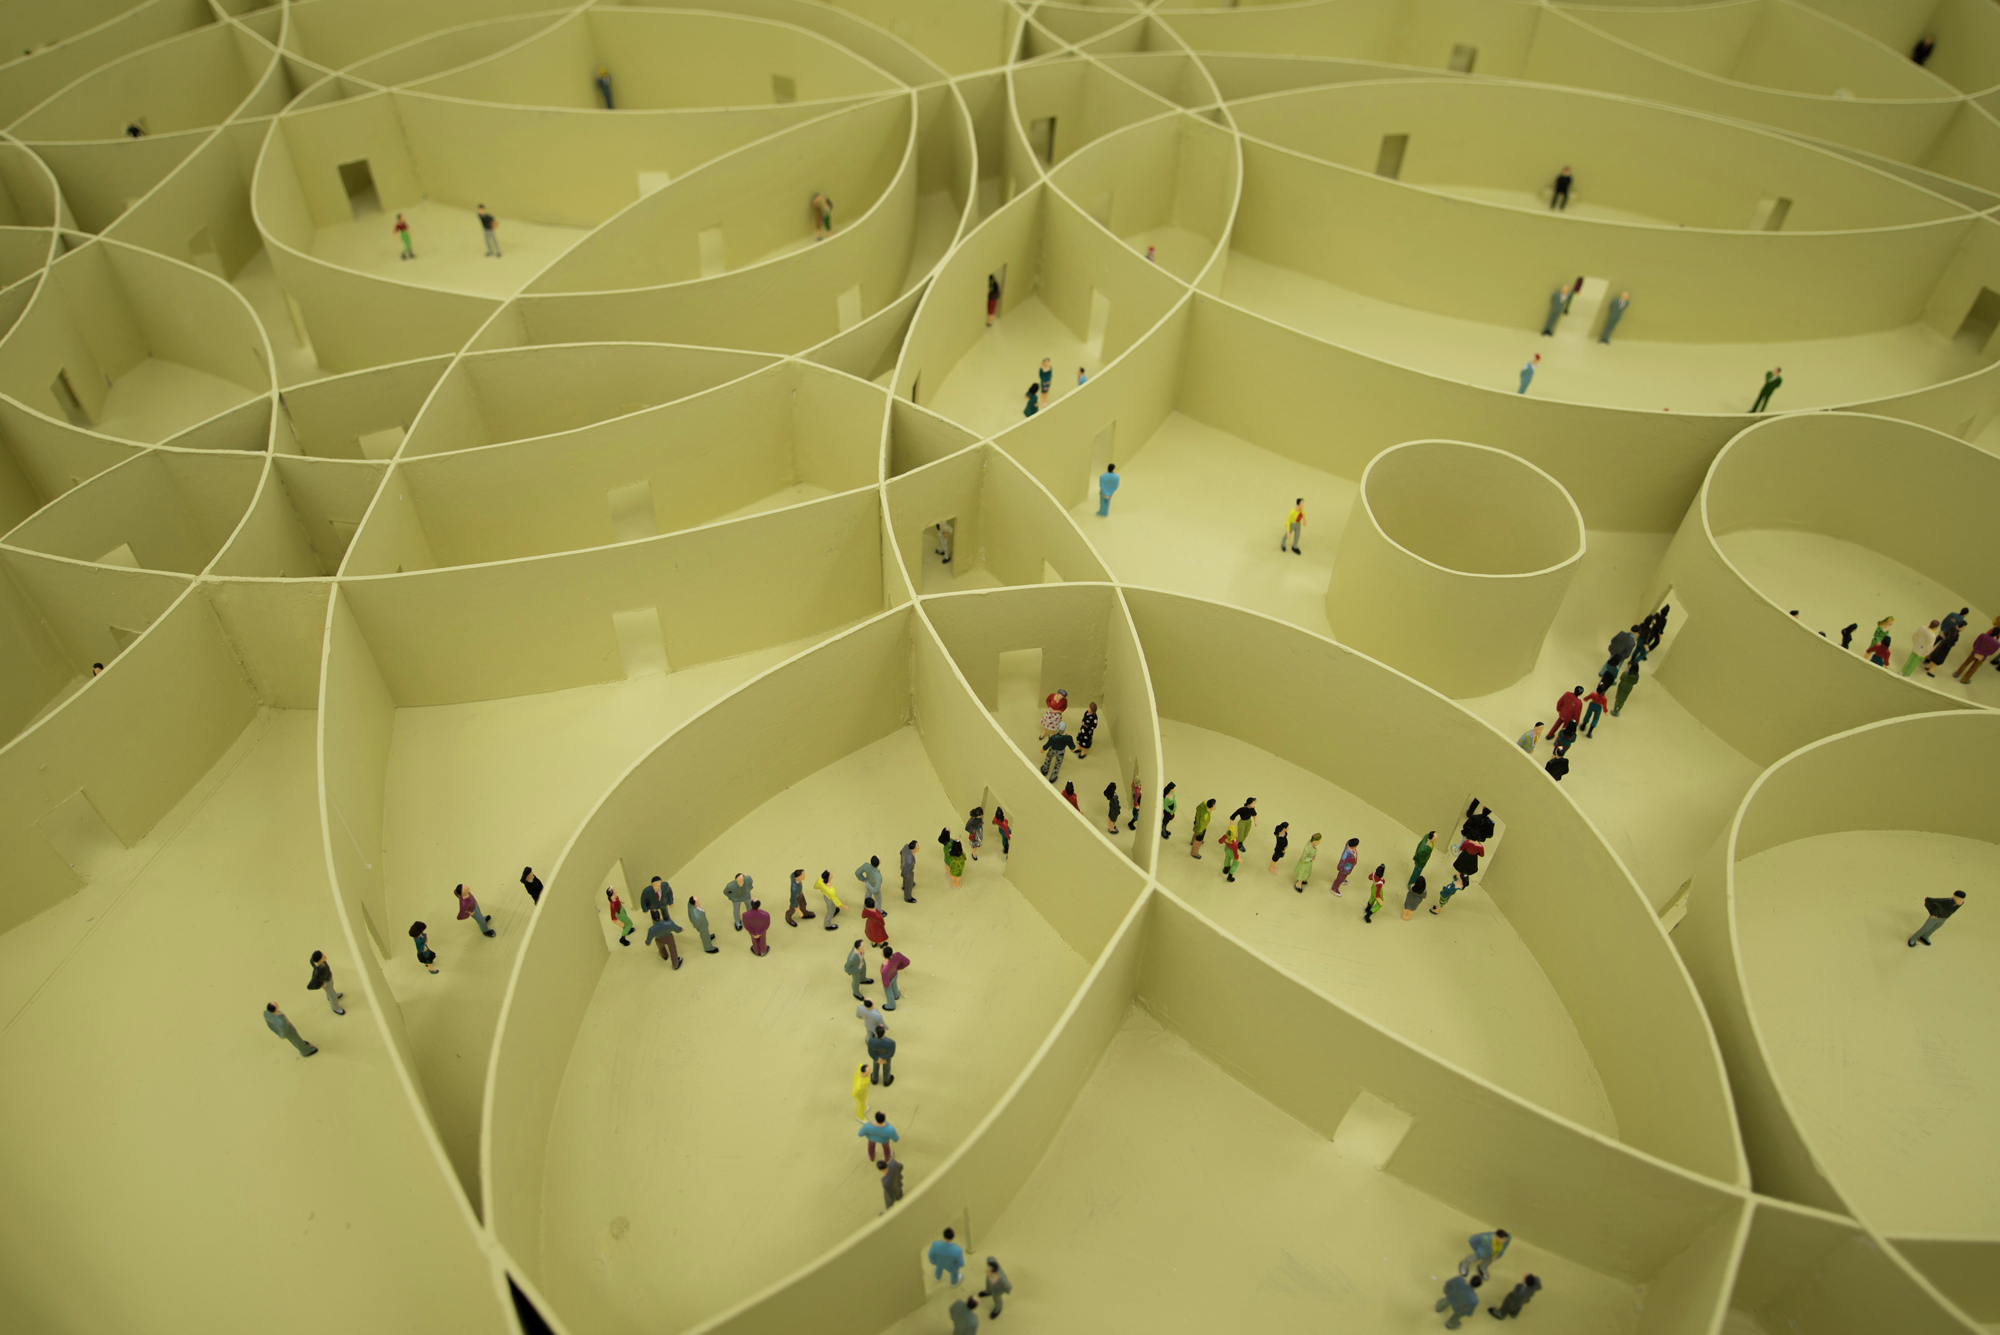 Pezo von Ellrichshausen's Model of 100 Circles Explores the Diversity of Repetition